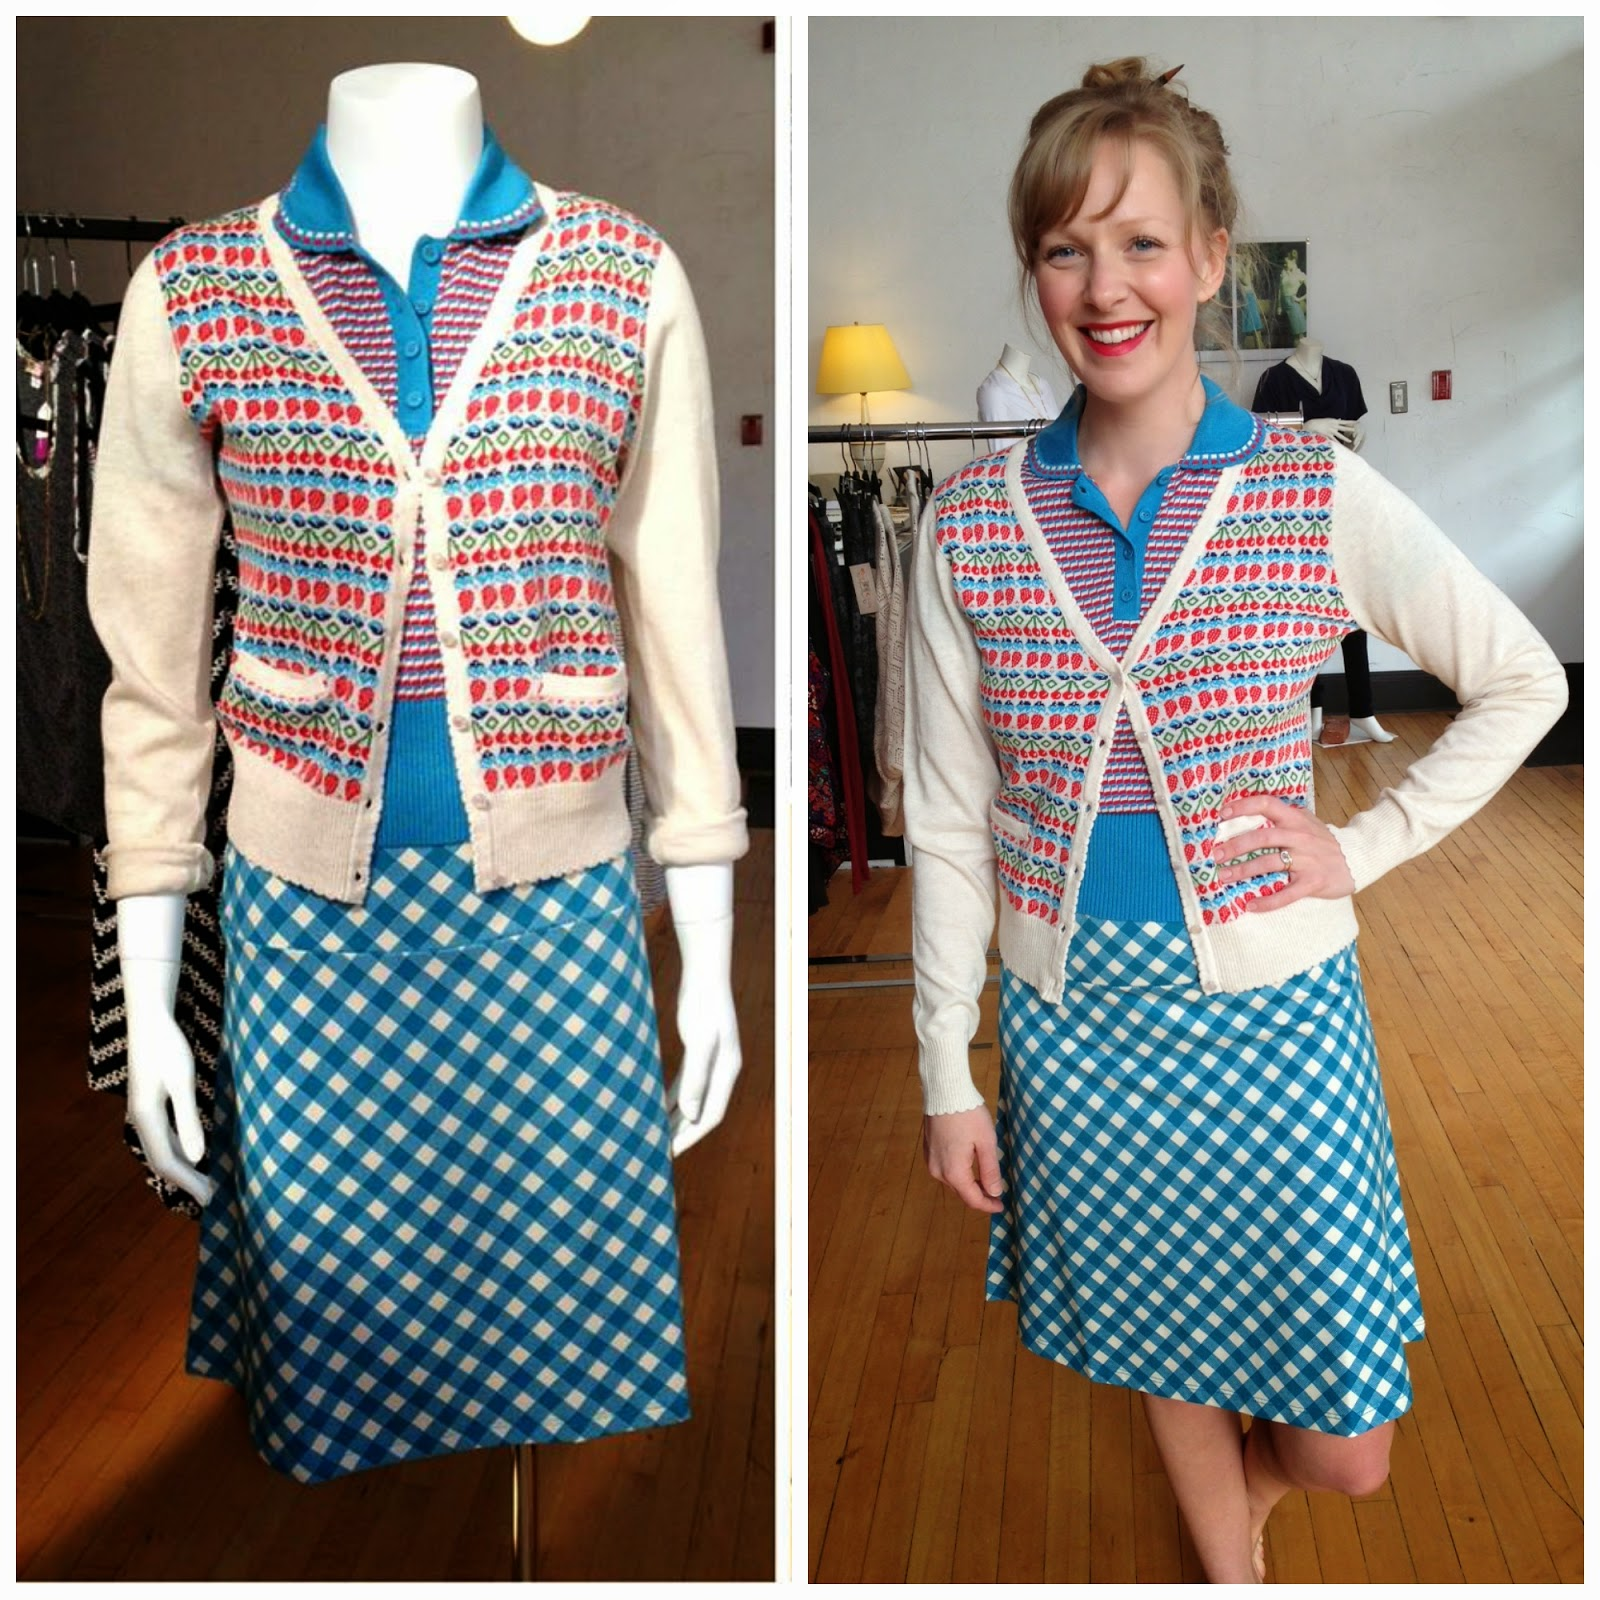 Louie et Lucie Jacky Border skirt, Pebble Polo, and Fruit V-neck Cardi at Folly